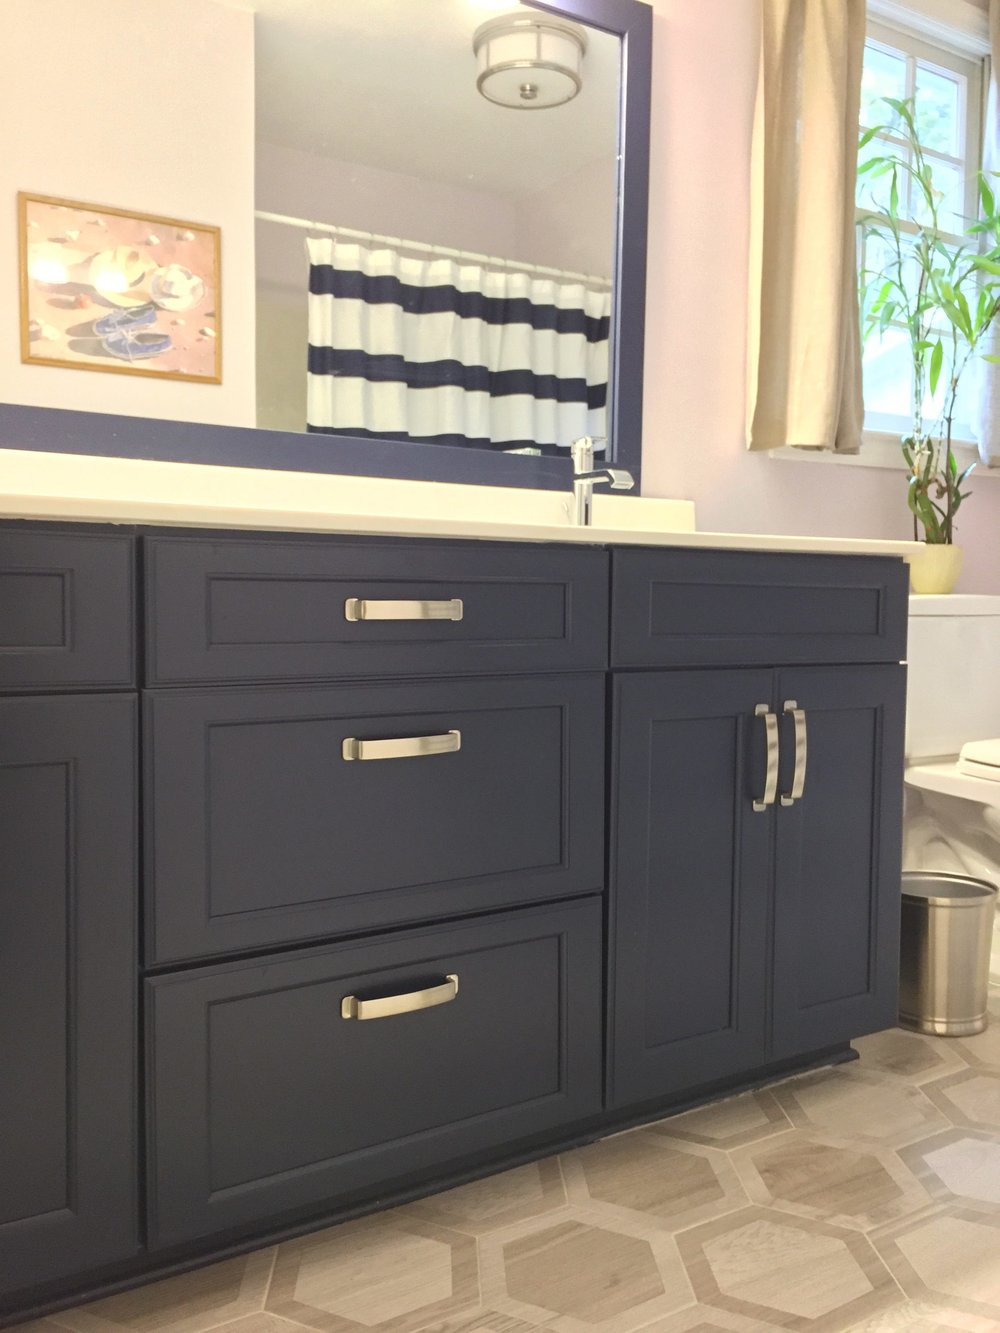 Navy blue cabinets are just plain fun to look at! And very handsome! And look at that floor!